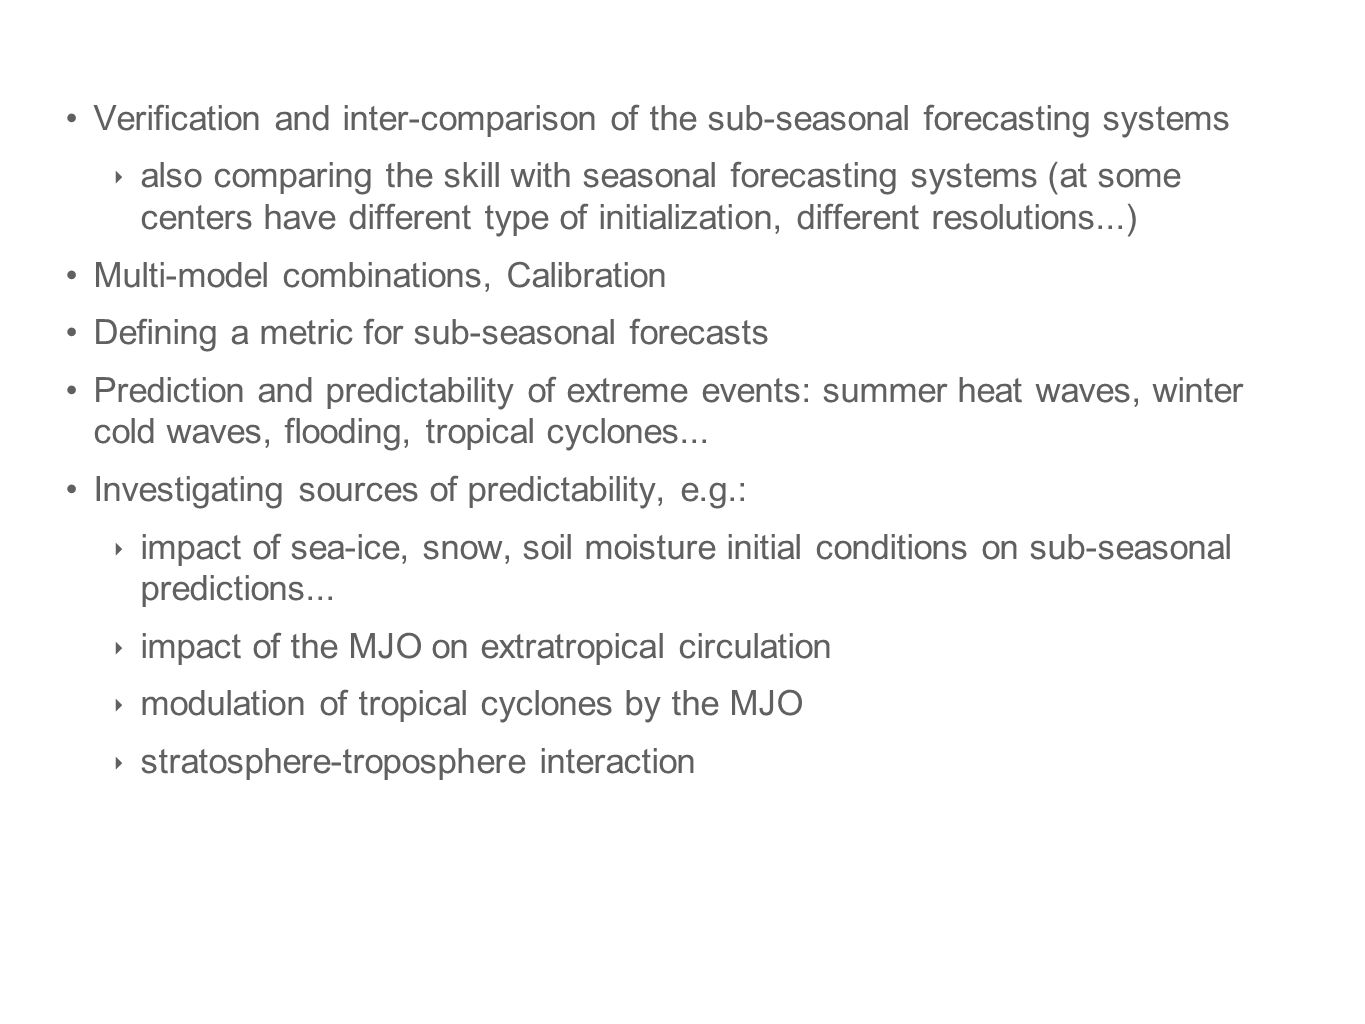 Verification and inter-comparison of the sub-seasonal forecasting systems also comparing the skill with seasonal forecasting systems (at some centers